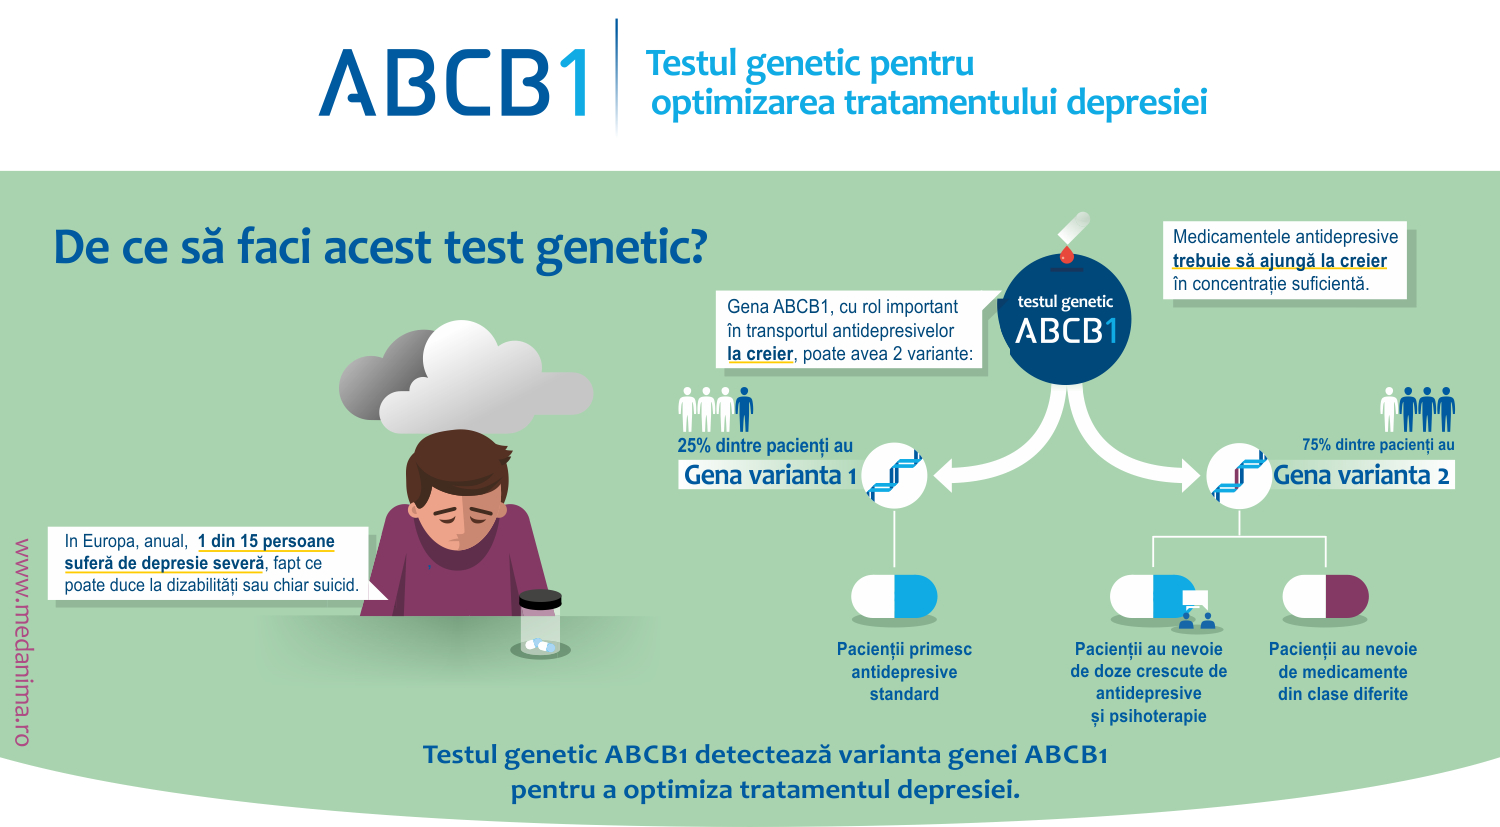 abcb1 test genetic tratament depresie med anima